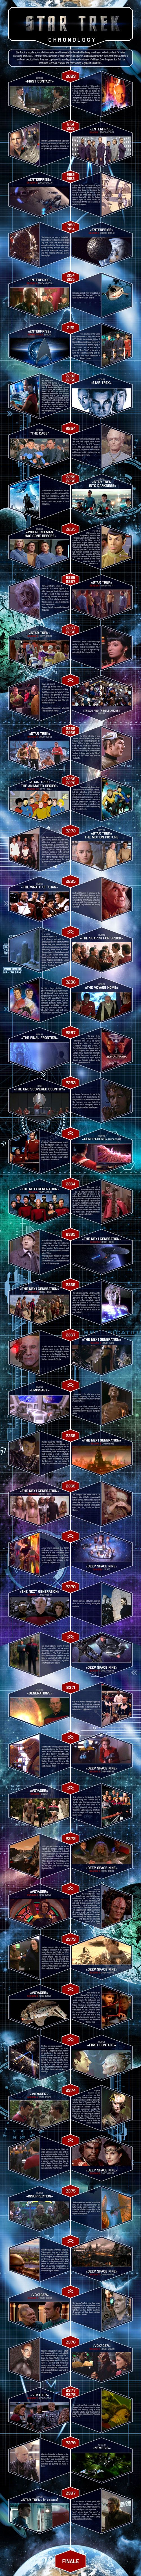 Star Trek Timeline This is wonderful ((except star trek 2009 and into darkness are an alternative timeline))